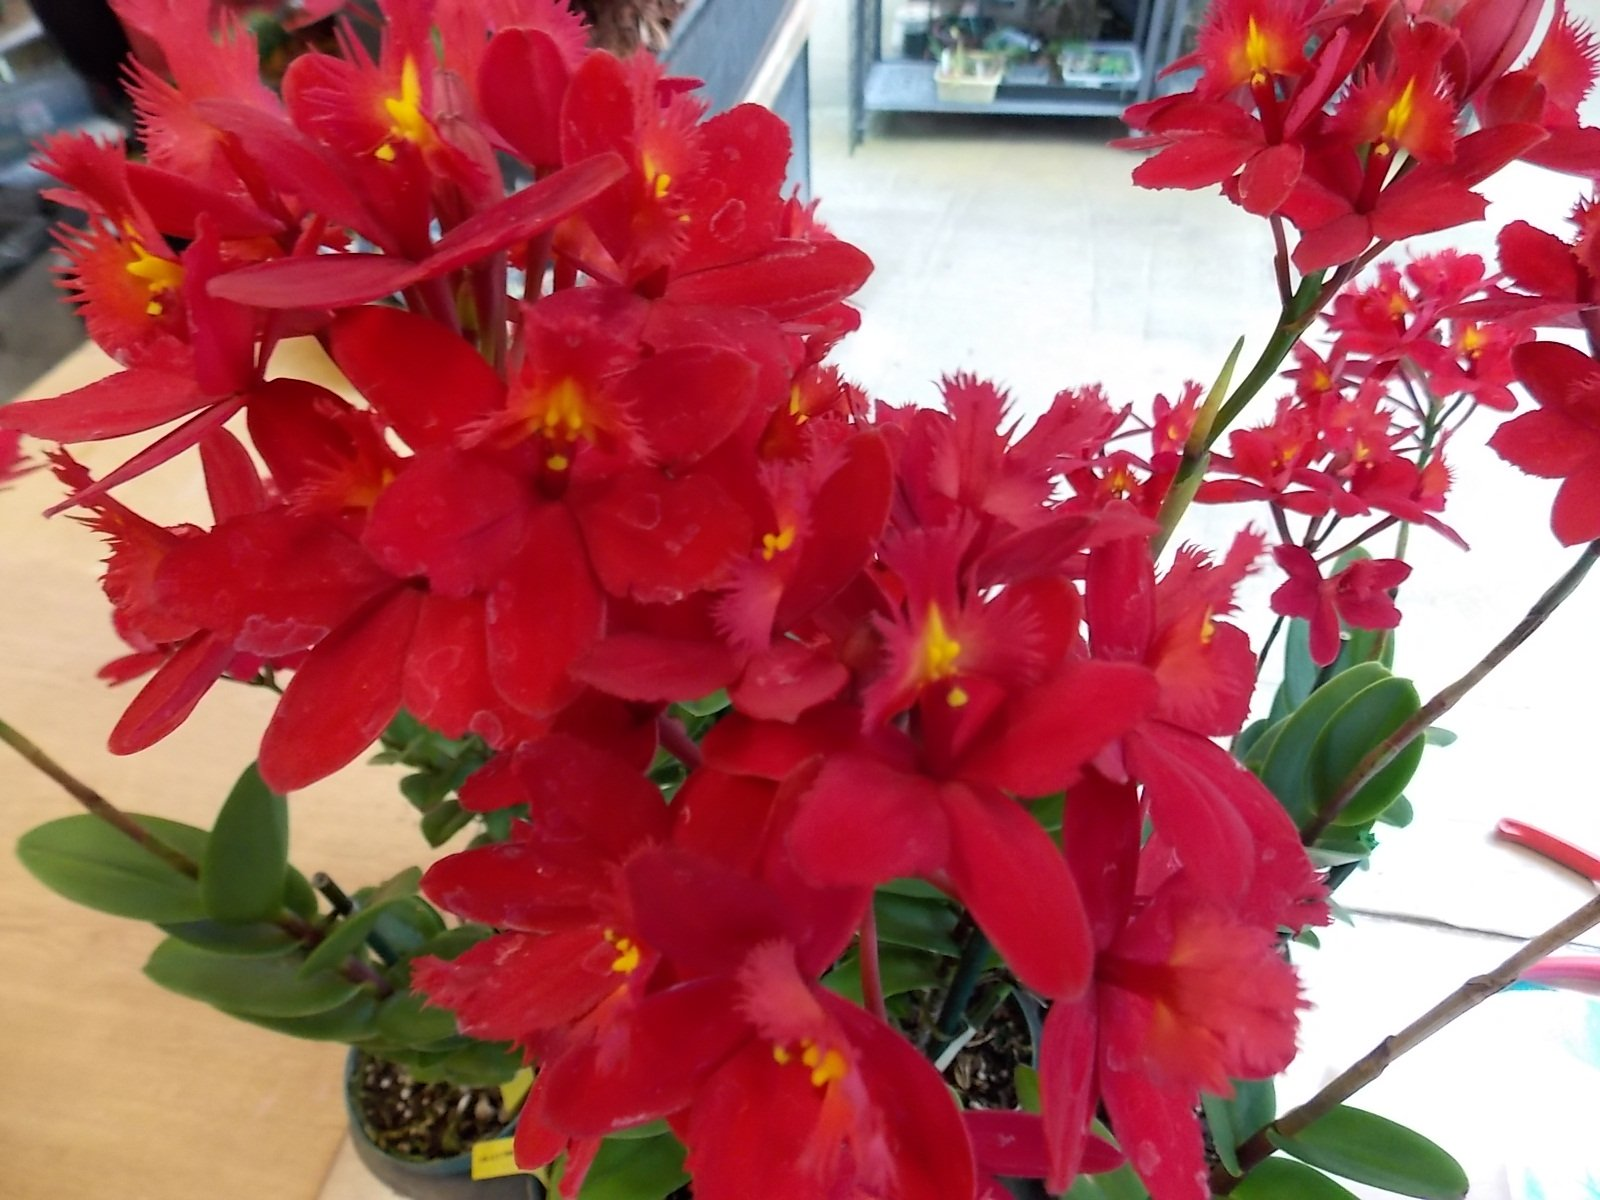 Kawamoto Orchid Nursery Epc. Cerina 'Nadia' NEW! Large Red! Exclusive! Collector's! Orchid Plant